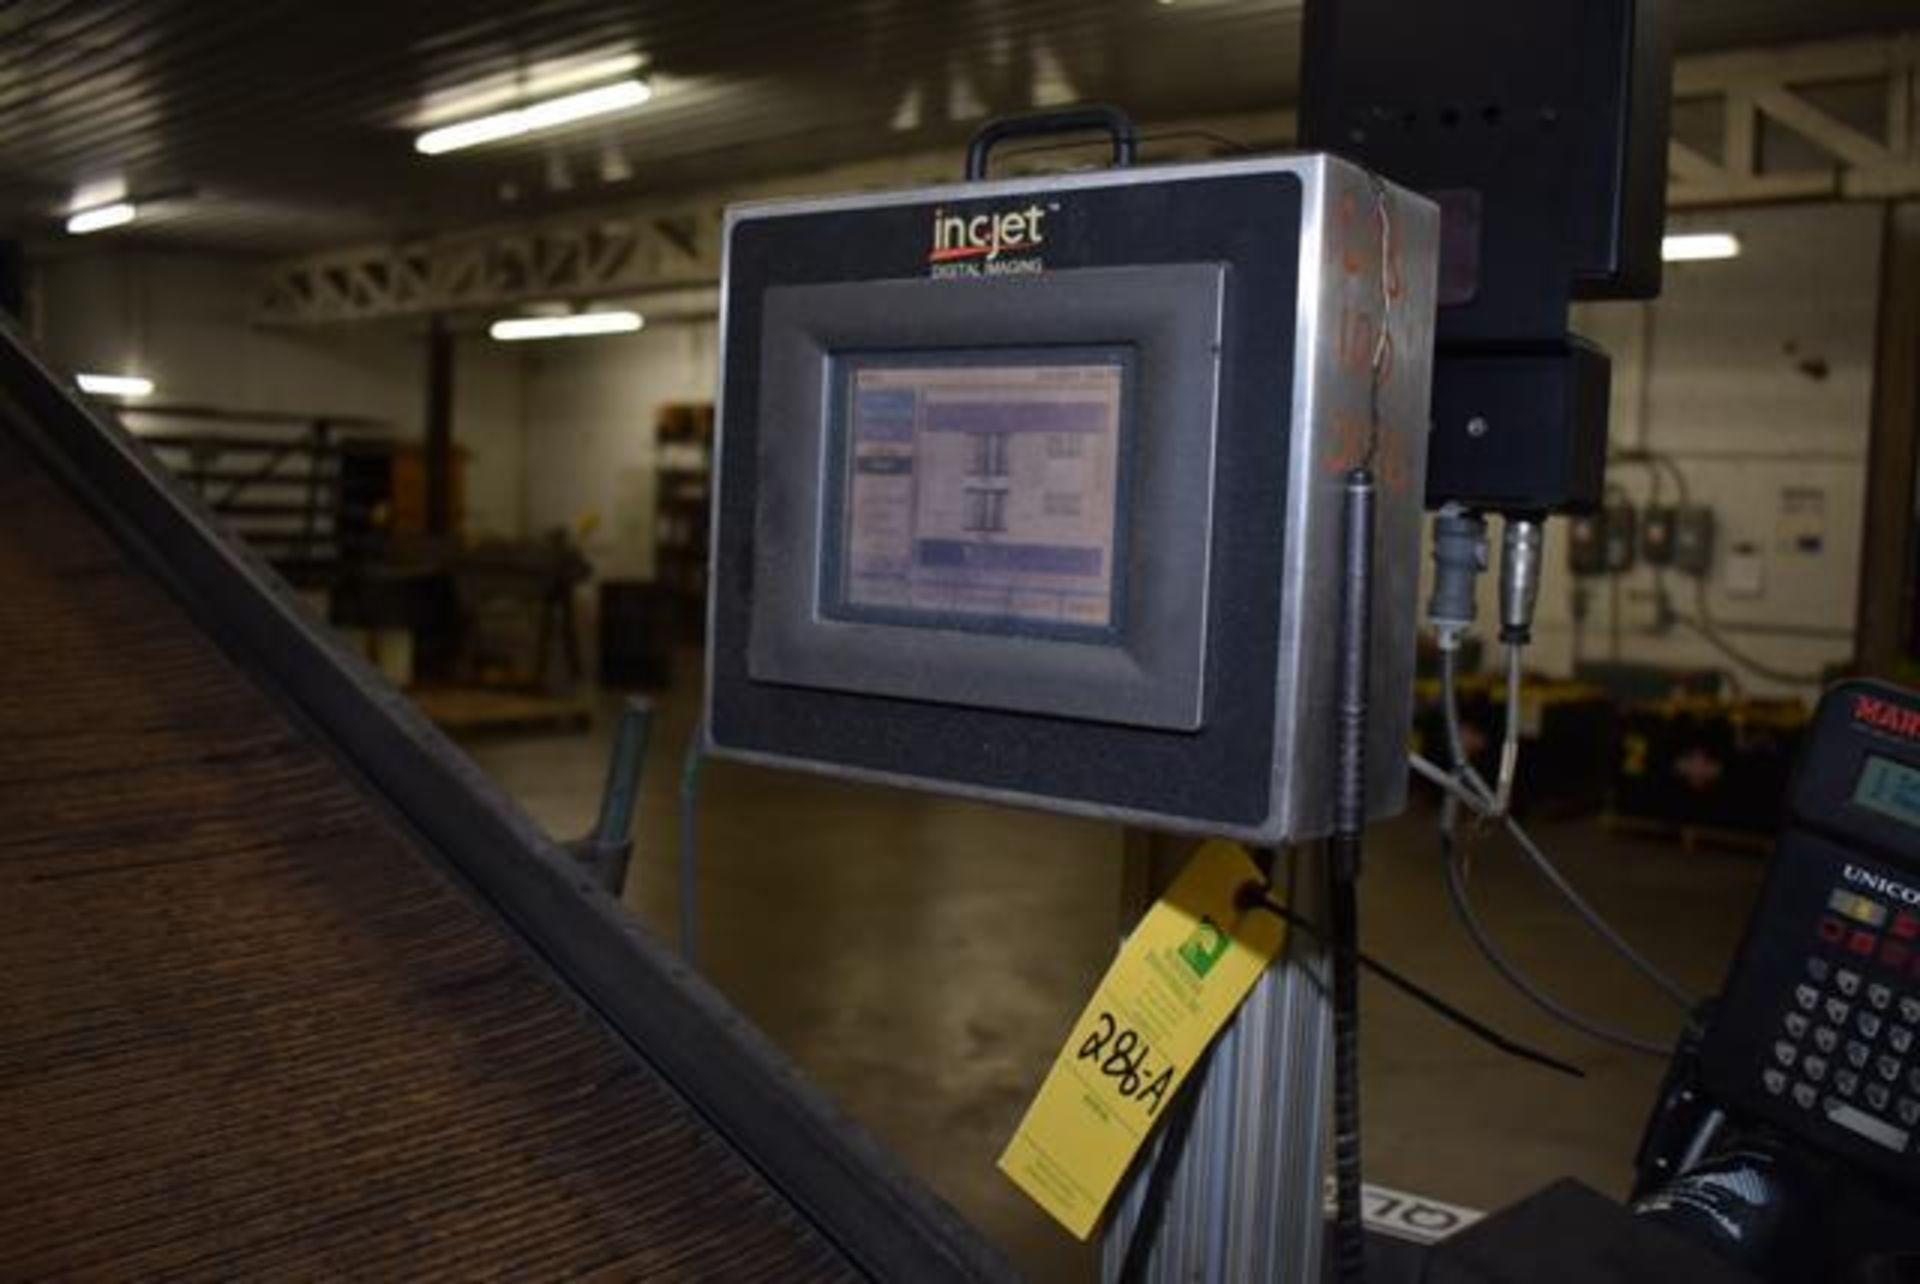 Lot 286A - ( Late Delivery Item Expected Availability Mid May) INC-JET Bar Code Printer, (2) Print Heads